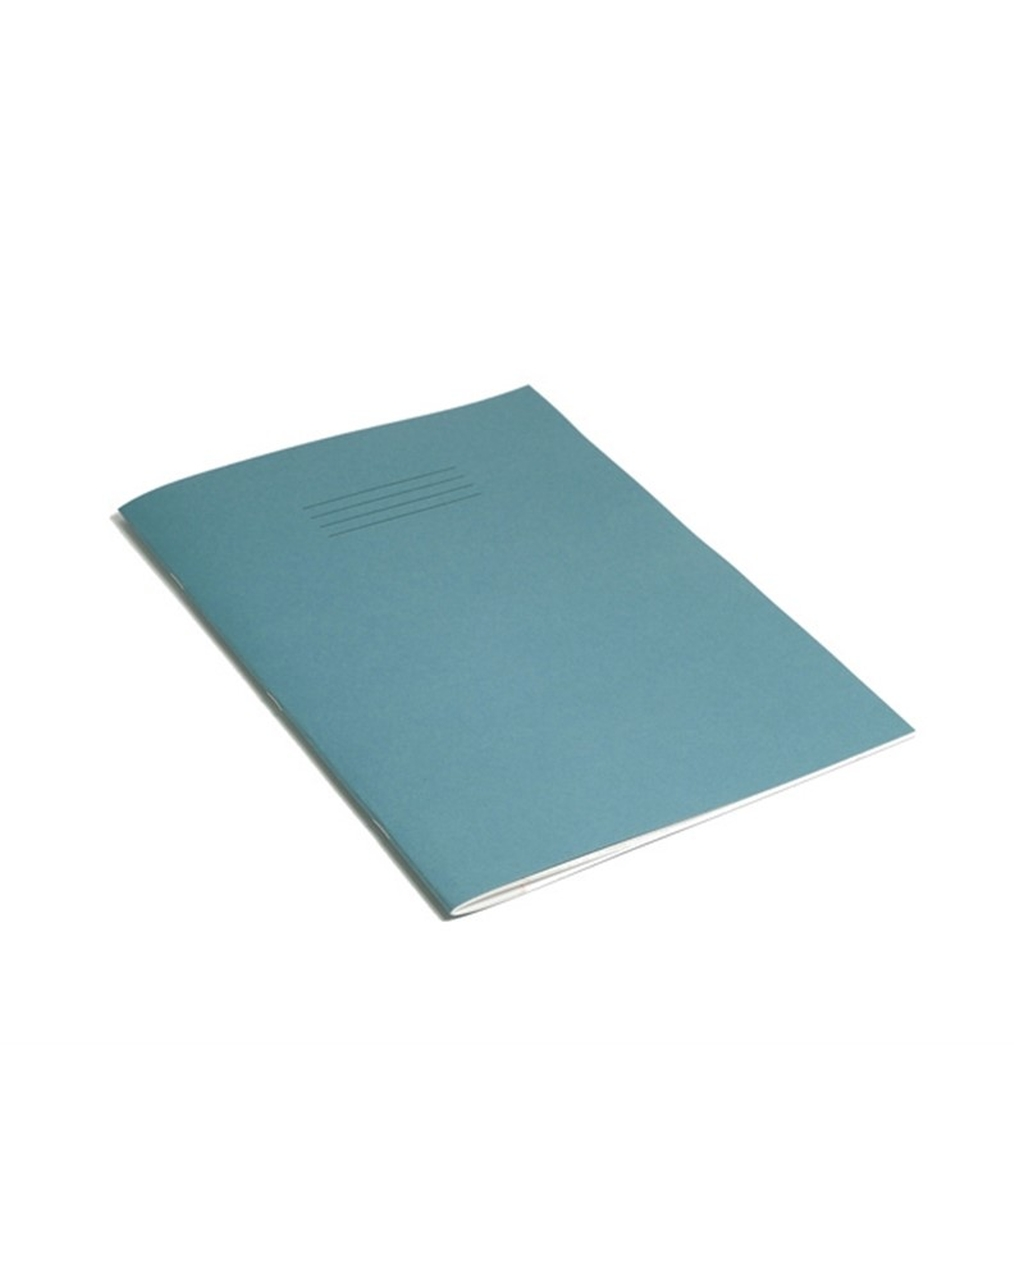 Exercise Book A4 (297 x 210mm) Light Blue Cover 5mm Squares 80 Pages